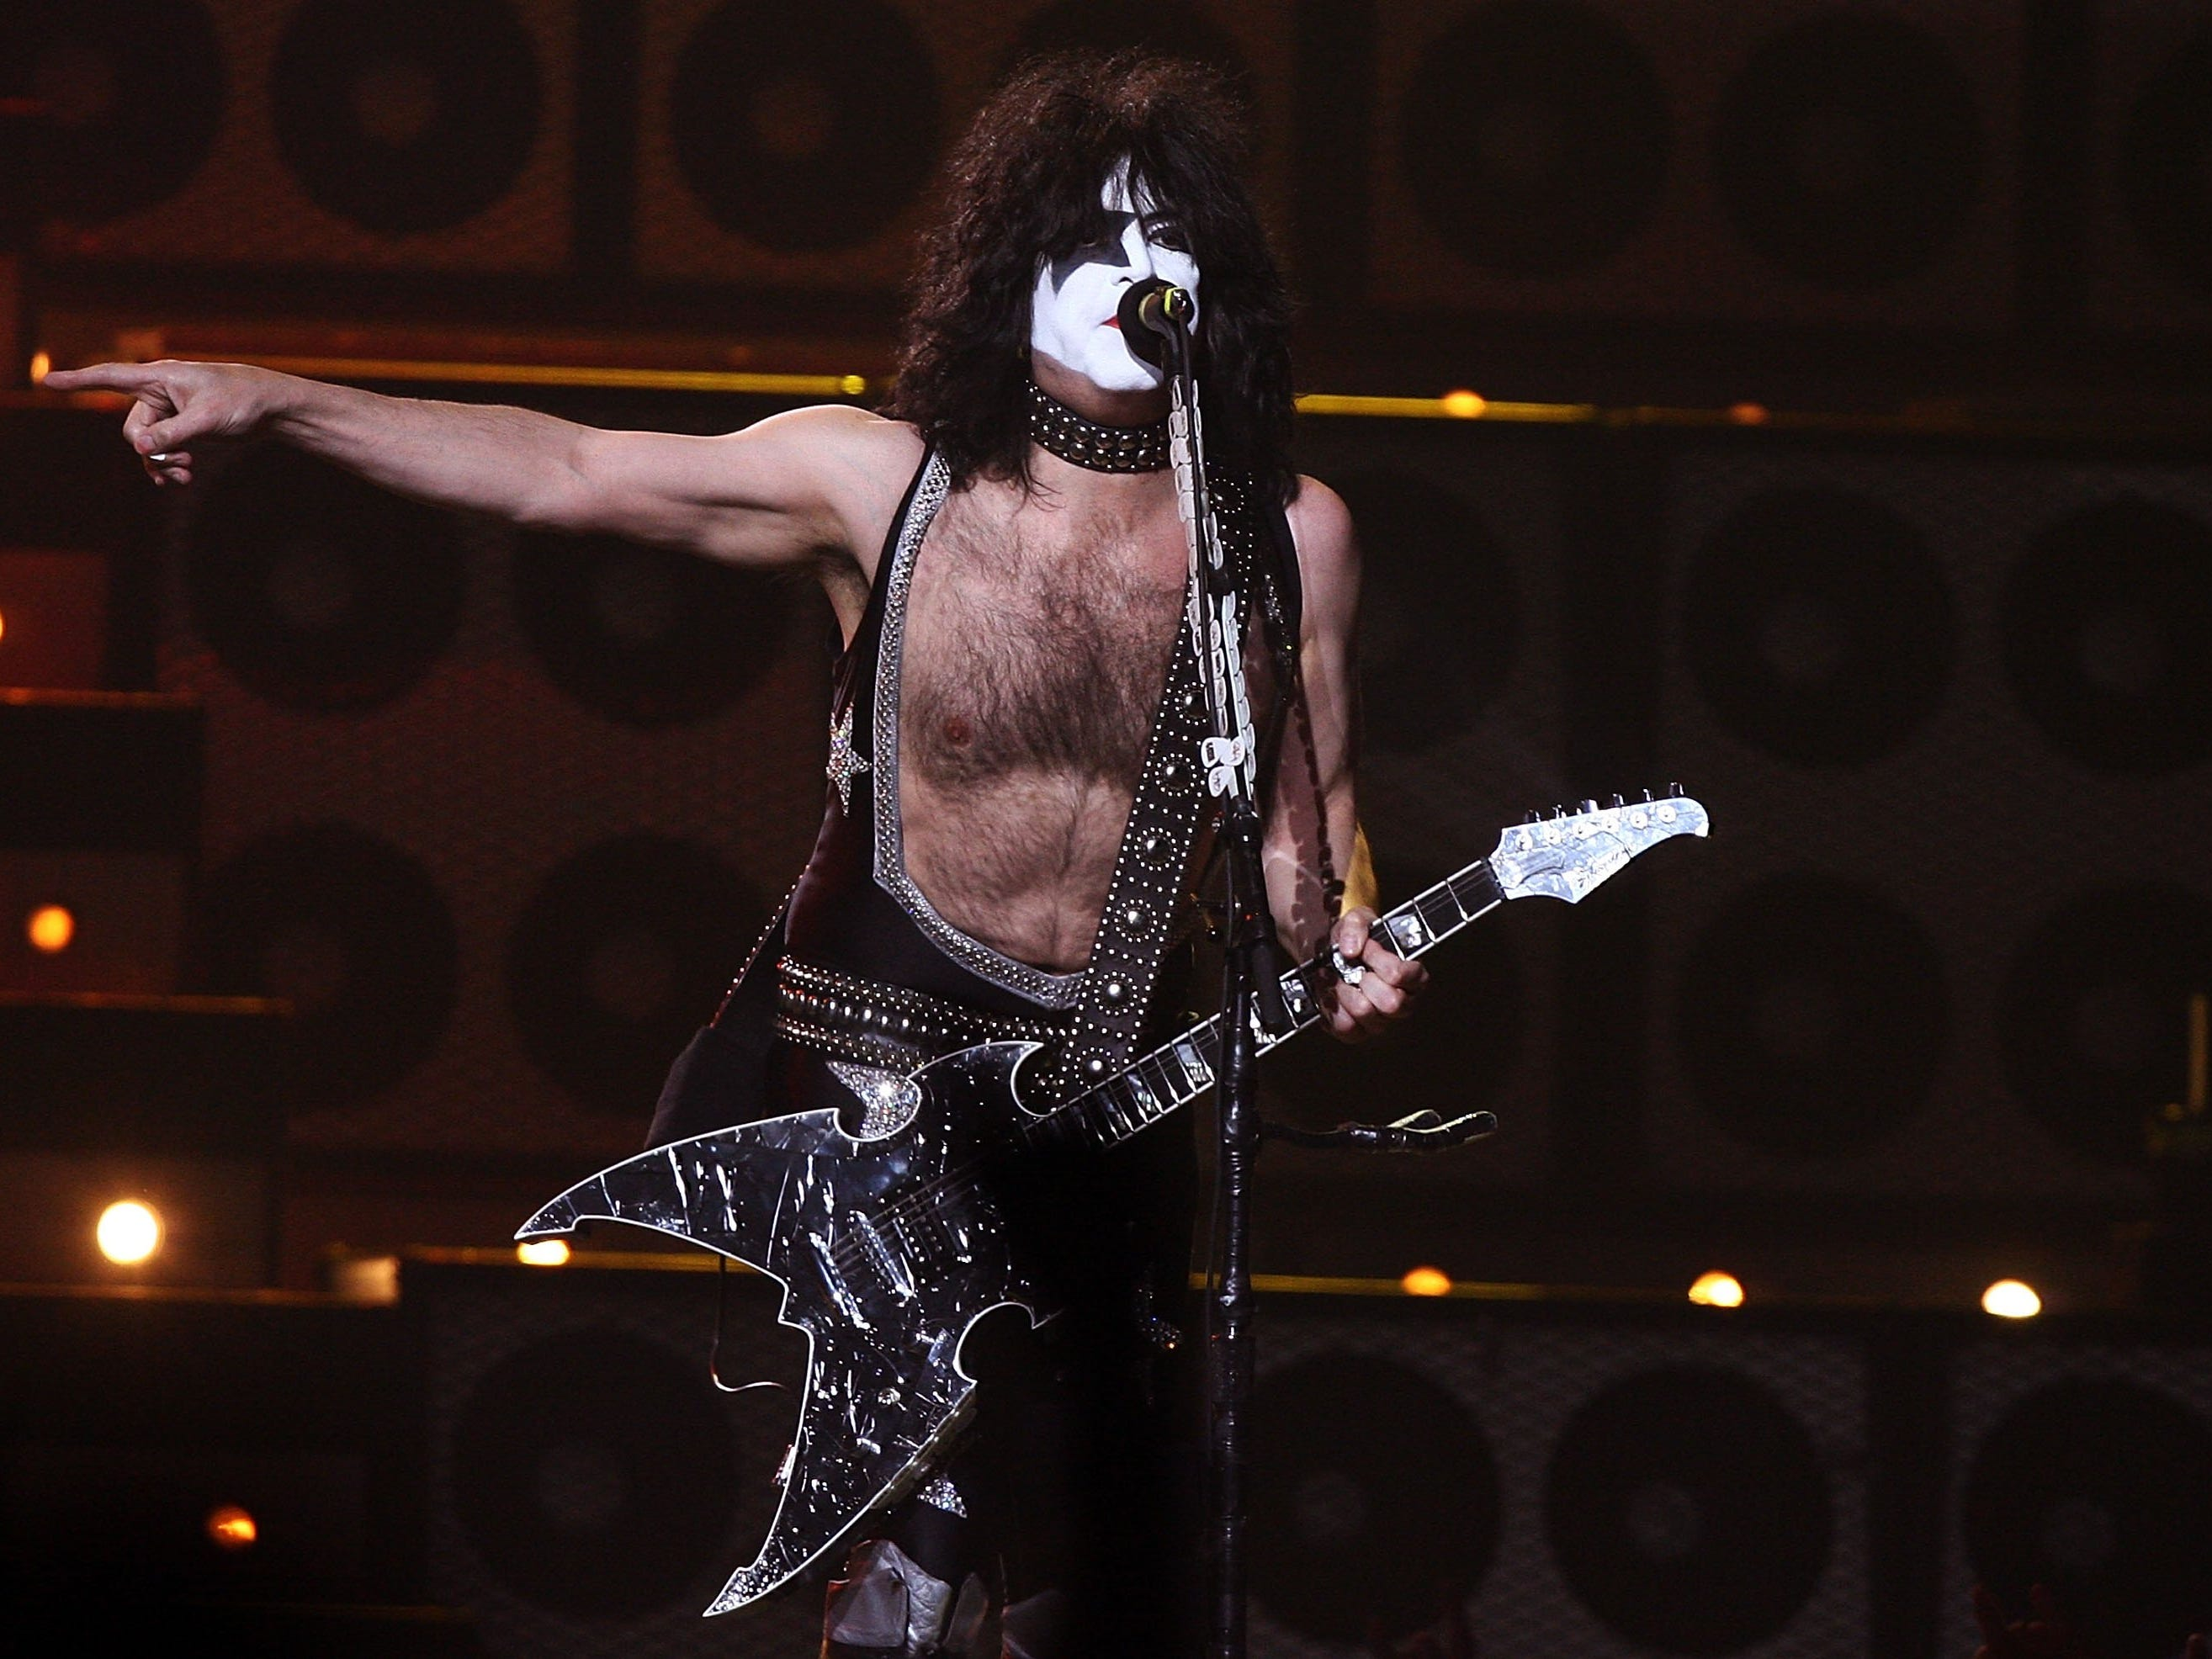 LAS VEGAS - MAY 25:  Musician Paul Stanley of Kiss performs during the VH1 Rock Honors at the Mandalay Bay Events Center on May 25, 2006 in Las Vegas, Nevada.  (Photo by Kevin Winter/Getty Images)